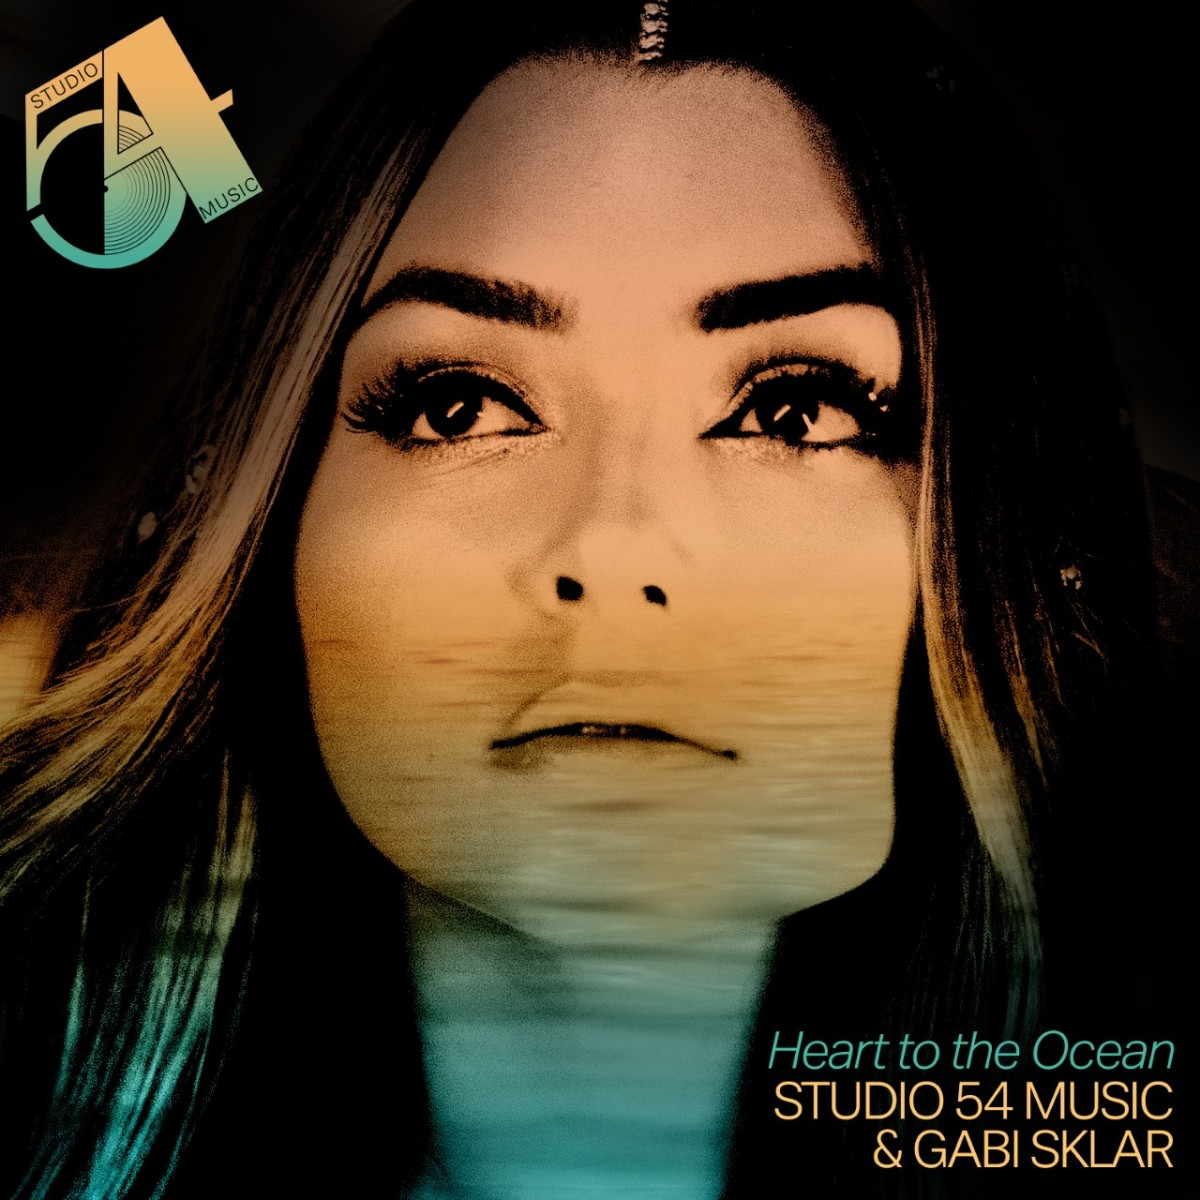 Studio 54 Music ft. Gabi Sklar - Heart To The Ocean